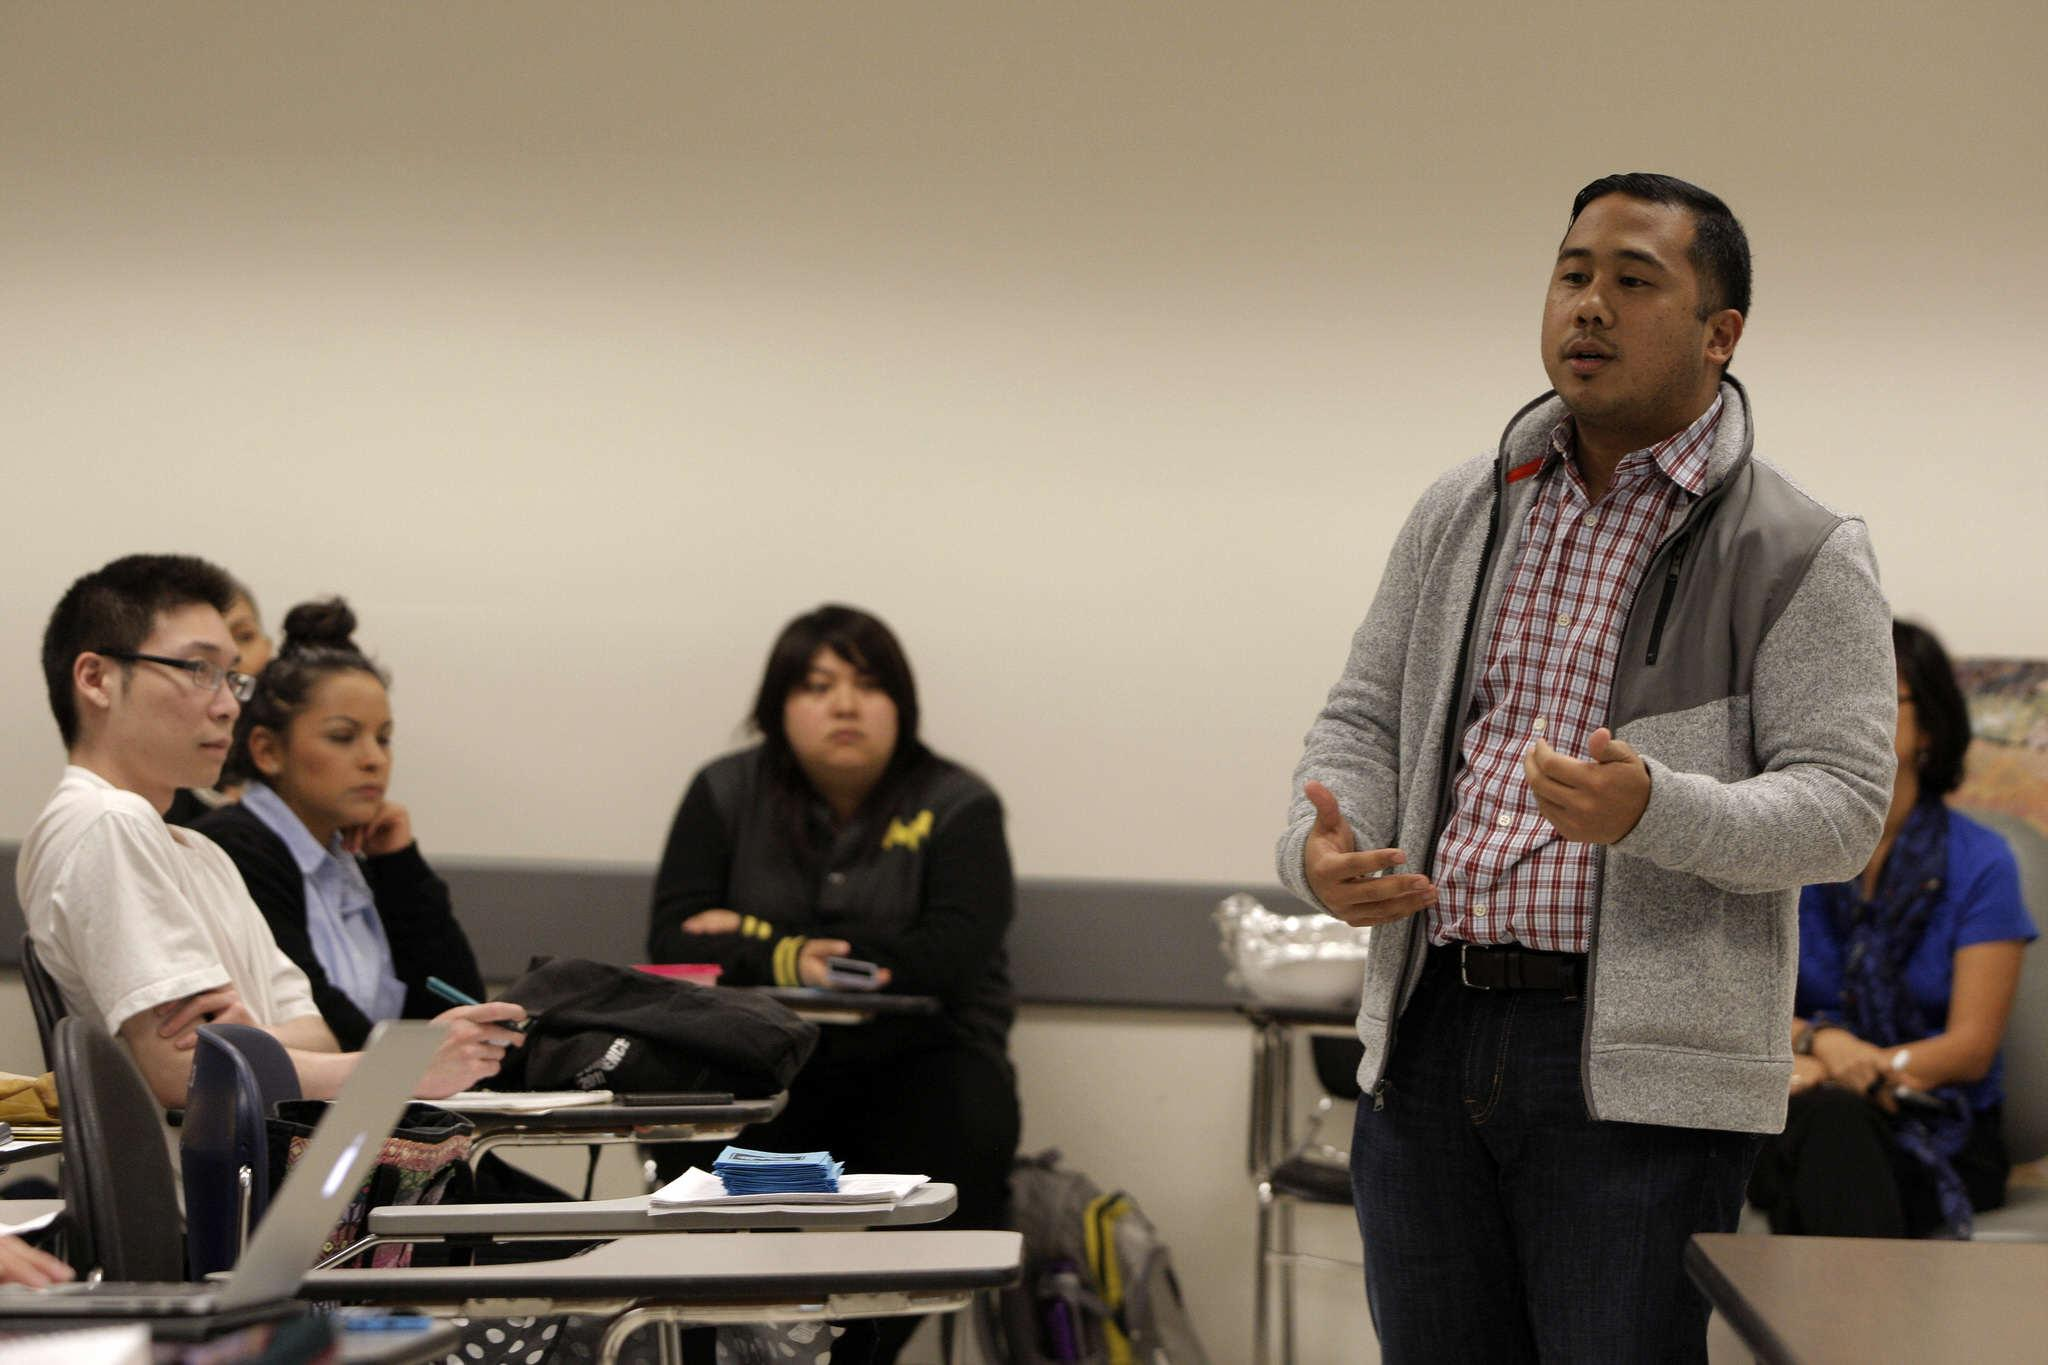 Eric Pido, Ph. D. assistant professor in the Asian-American studies department, shares experiences he has been through during the Violence Teach-In hosted at SF State Tuesday, Nov. 4, 2014.